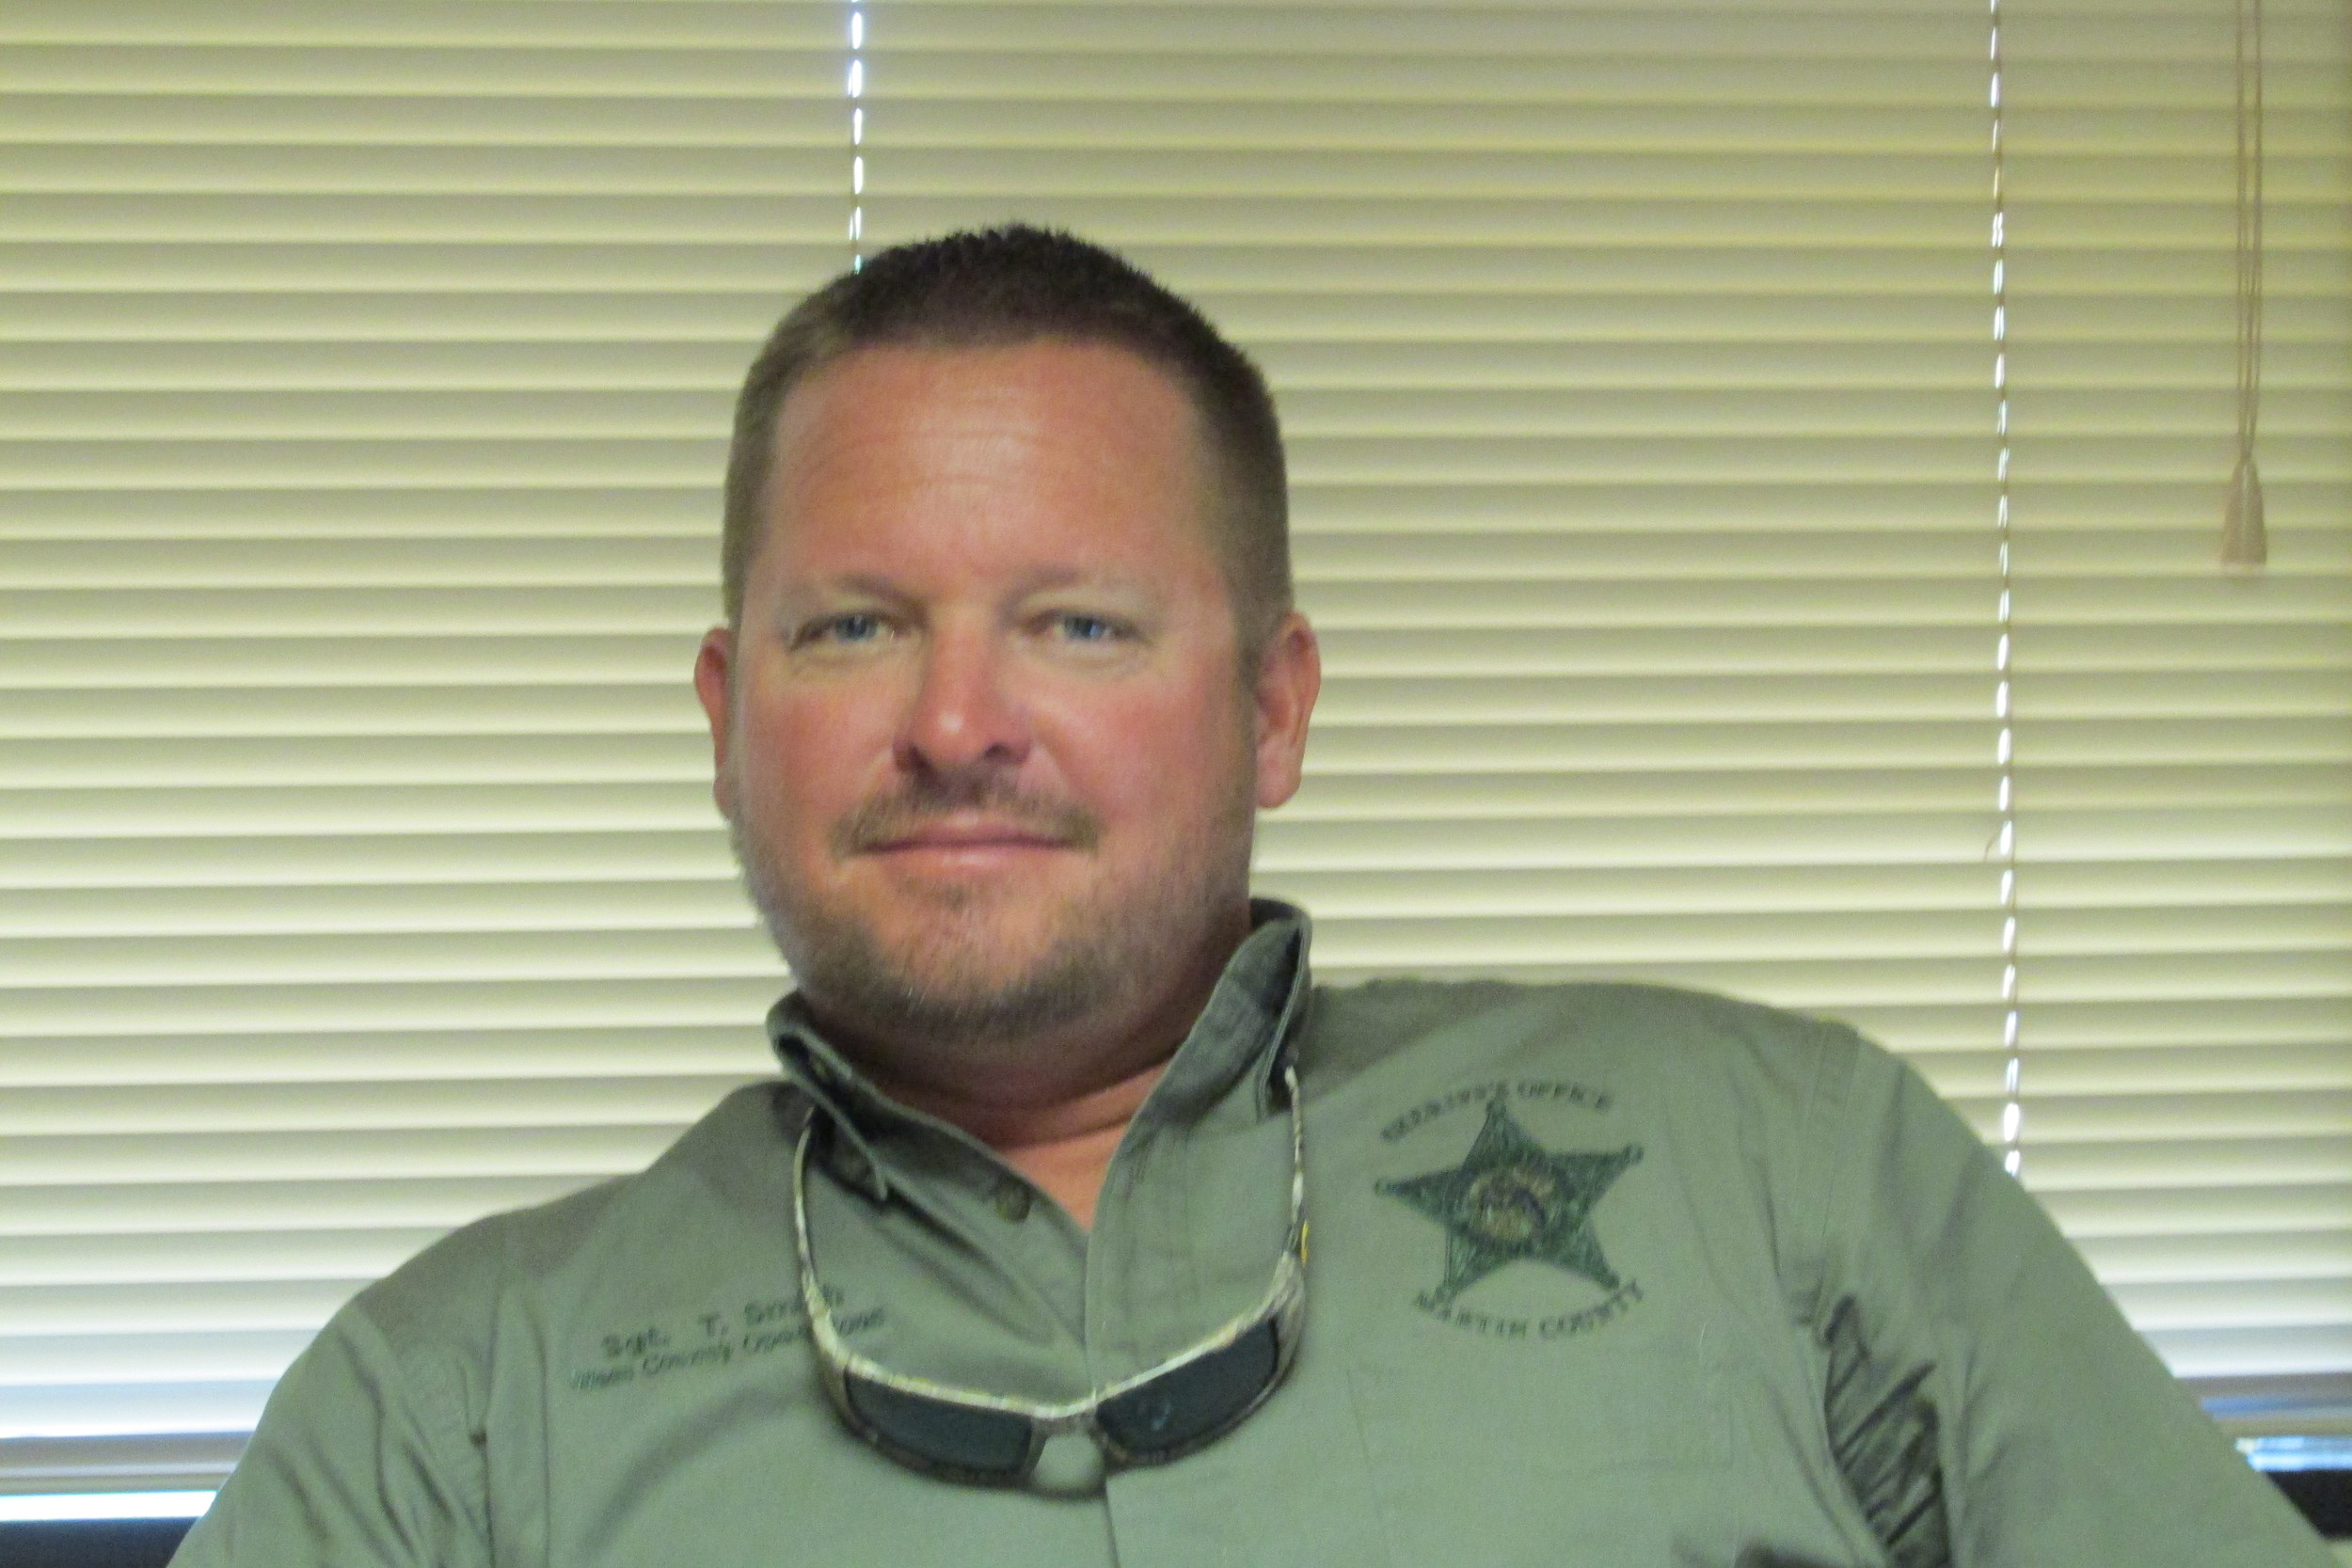 Sergeant Thomas Smith, Martin County Sheriff